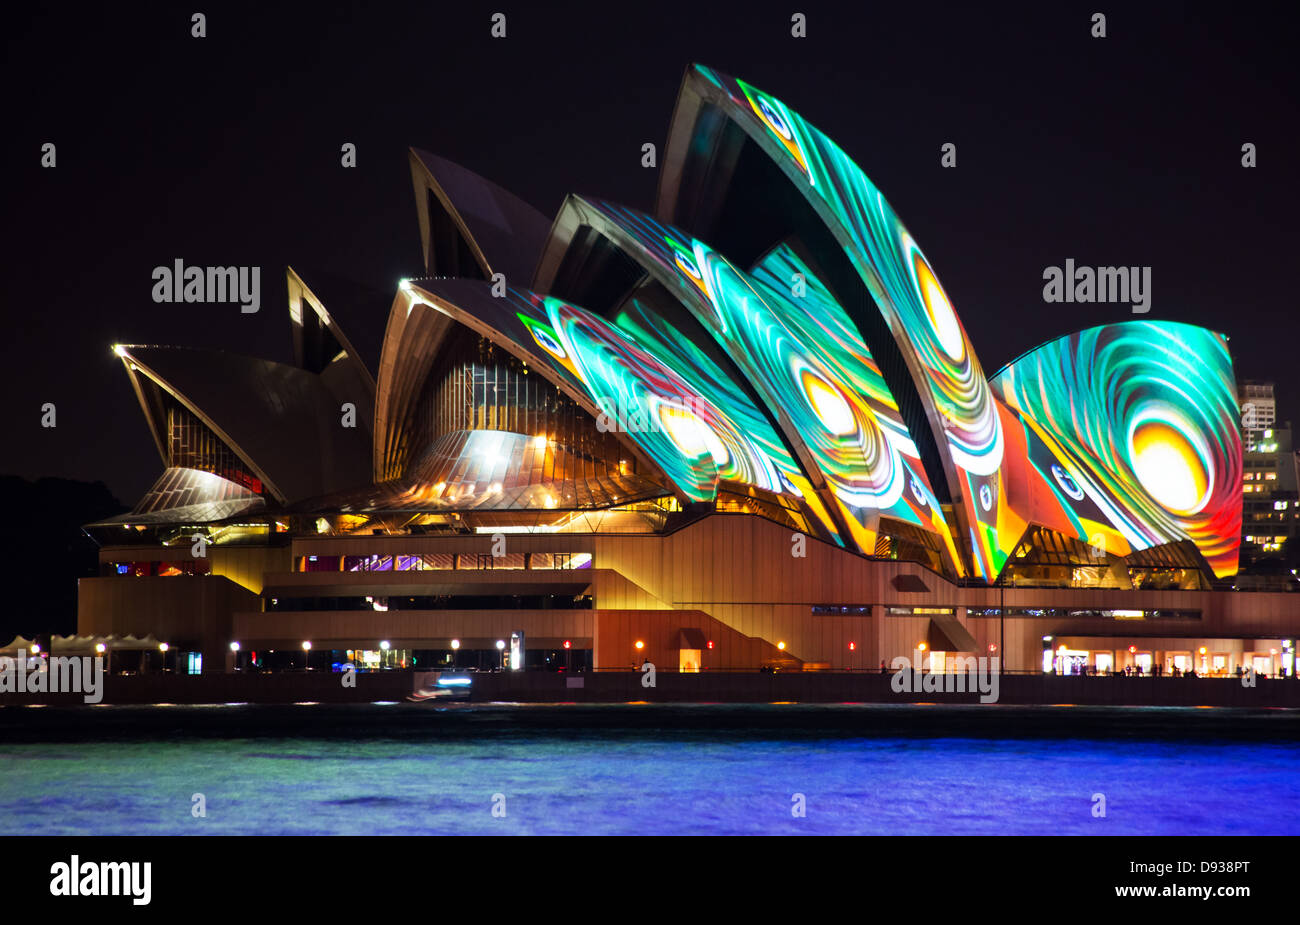 home lighting effects. Special Lighting. Lighting Effects On The Sydney Opera House During Annual Vivid Light Festival Home